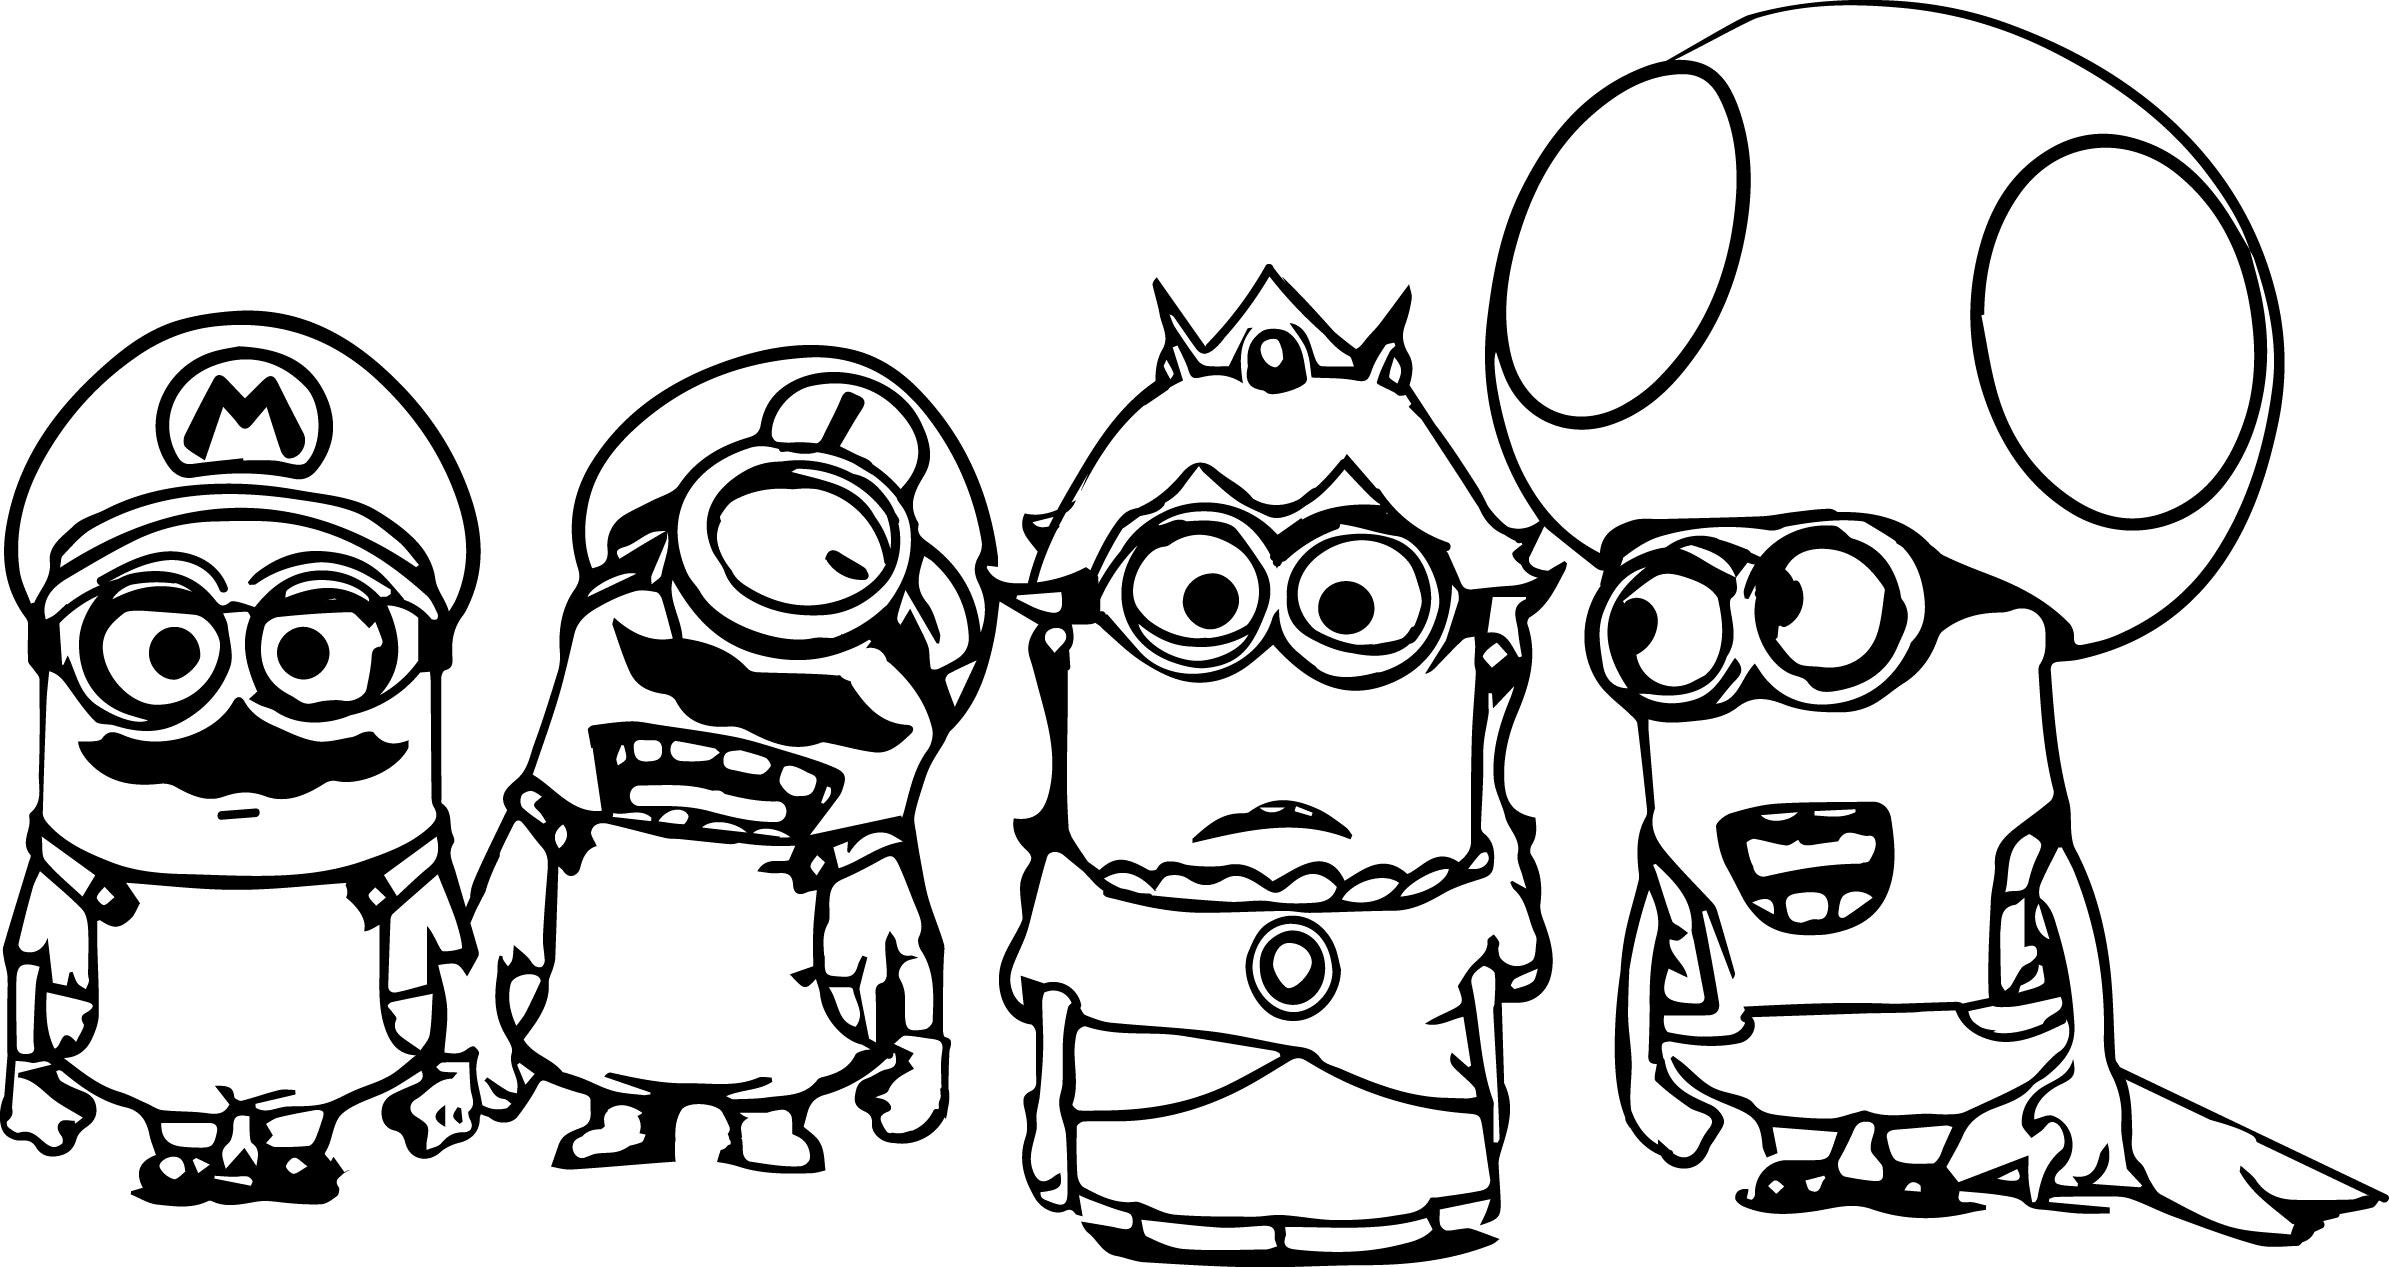 minion coloring book free coloring pages printable pictures to color kids coloring minion book